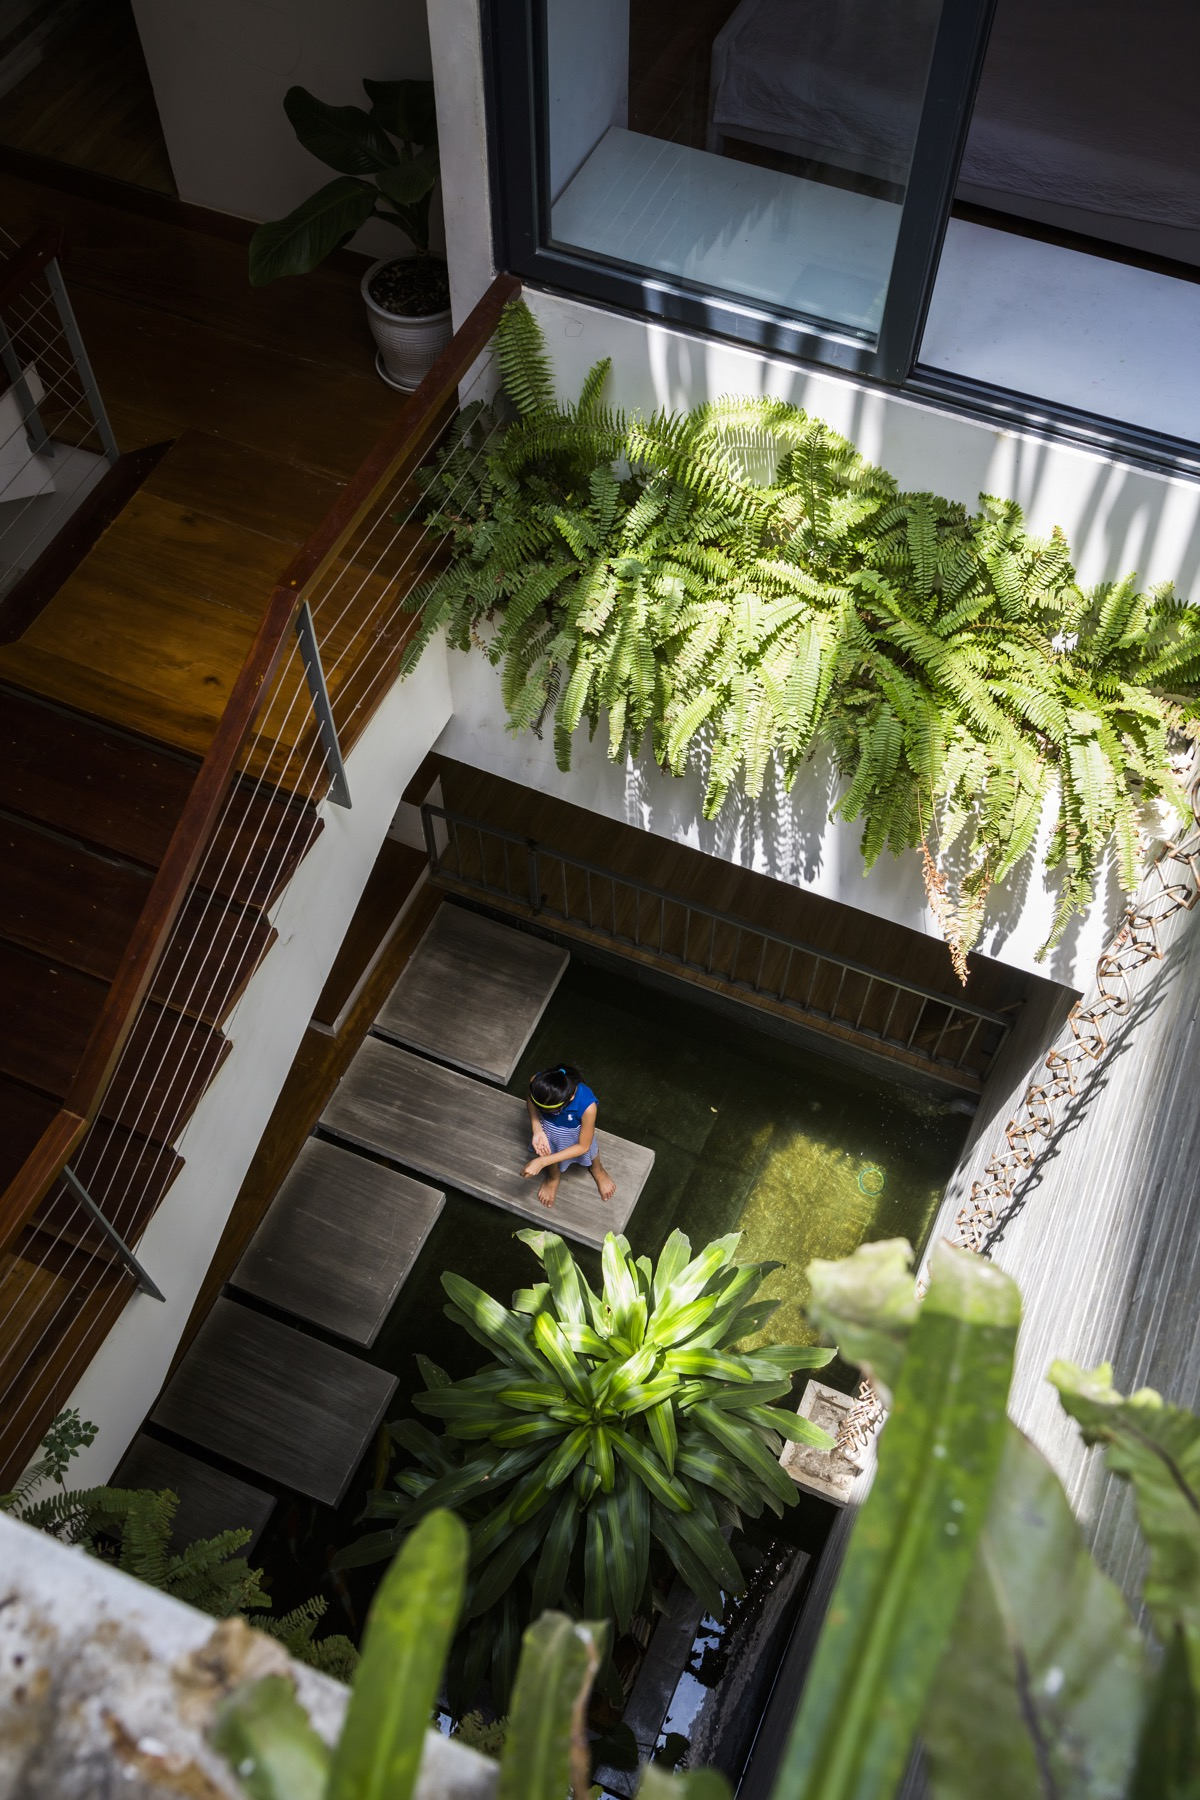 32 Captivating Courtyard Designs That Make Us Go Wow